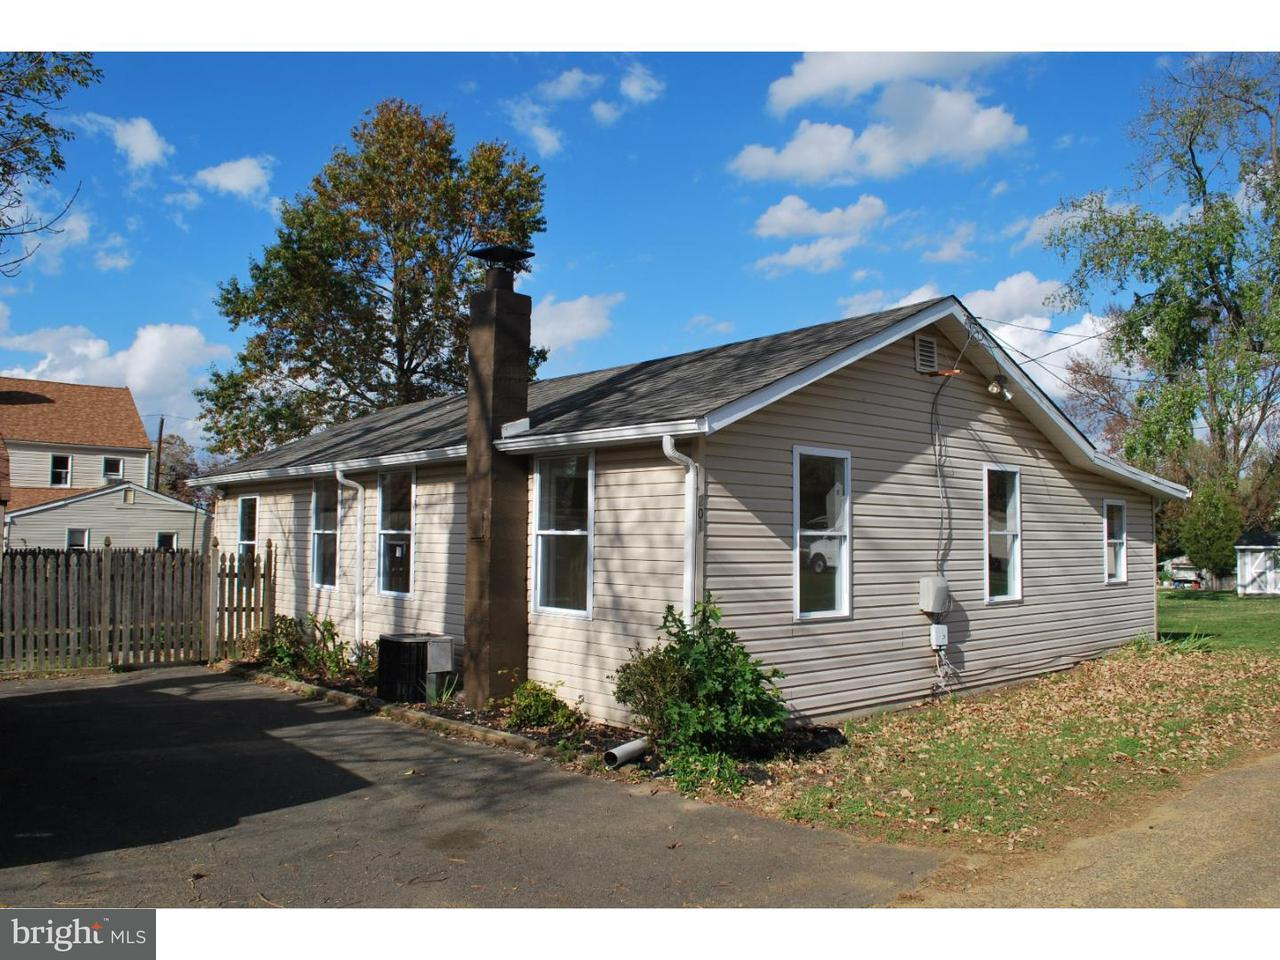 Single Family Home for Sale at 201 LYONS Lane Fieldsboro, New Jersey 08505 United States